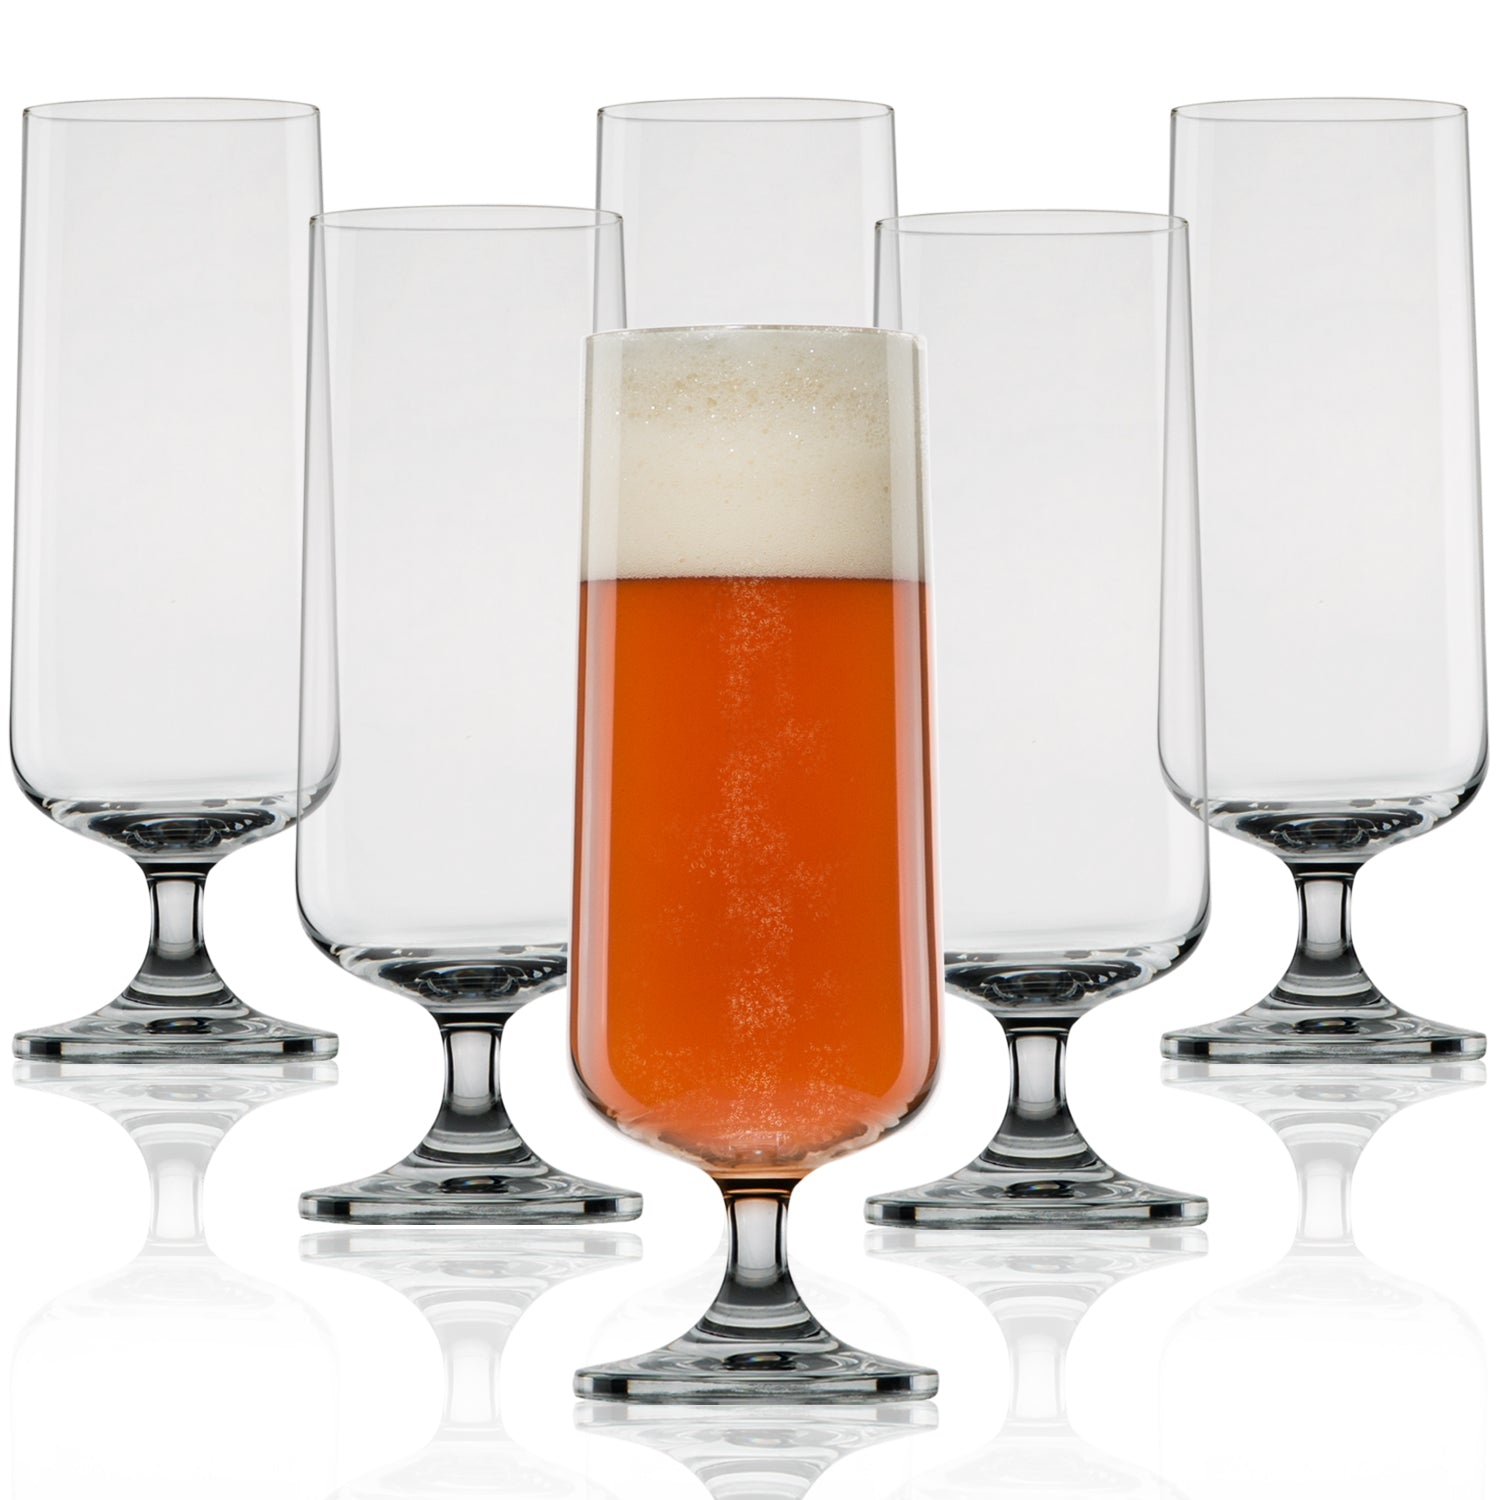 Perfectly Shaped Pilsner Glass - Nucleated Beer Glasses for Better Head Retention, Aroma and Flavor - 18 oz Craft Beer Glass for Beer Drinking Enhancement- Gift Idea for Men - 6 Pack